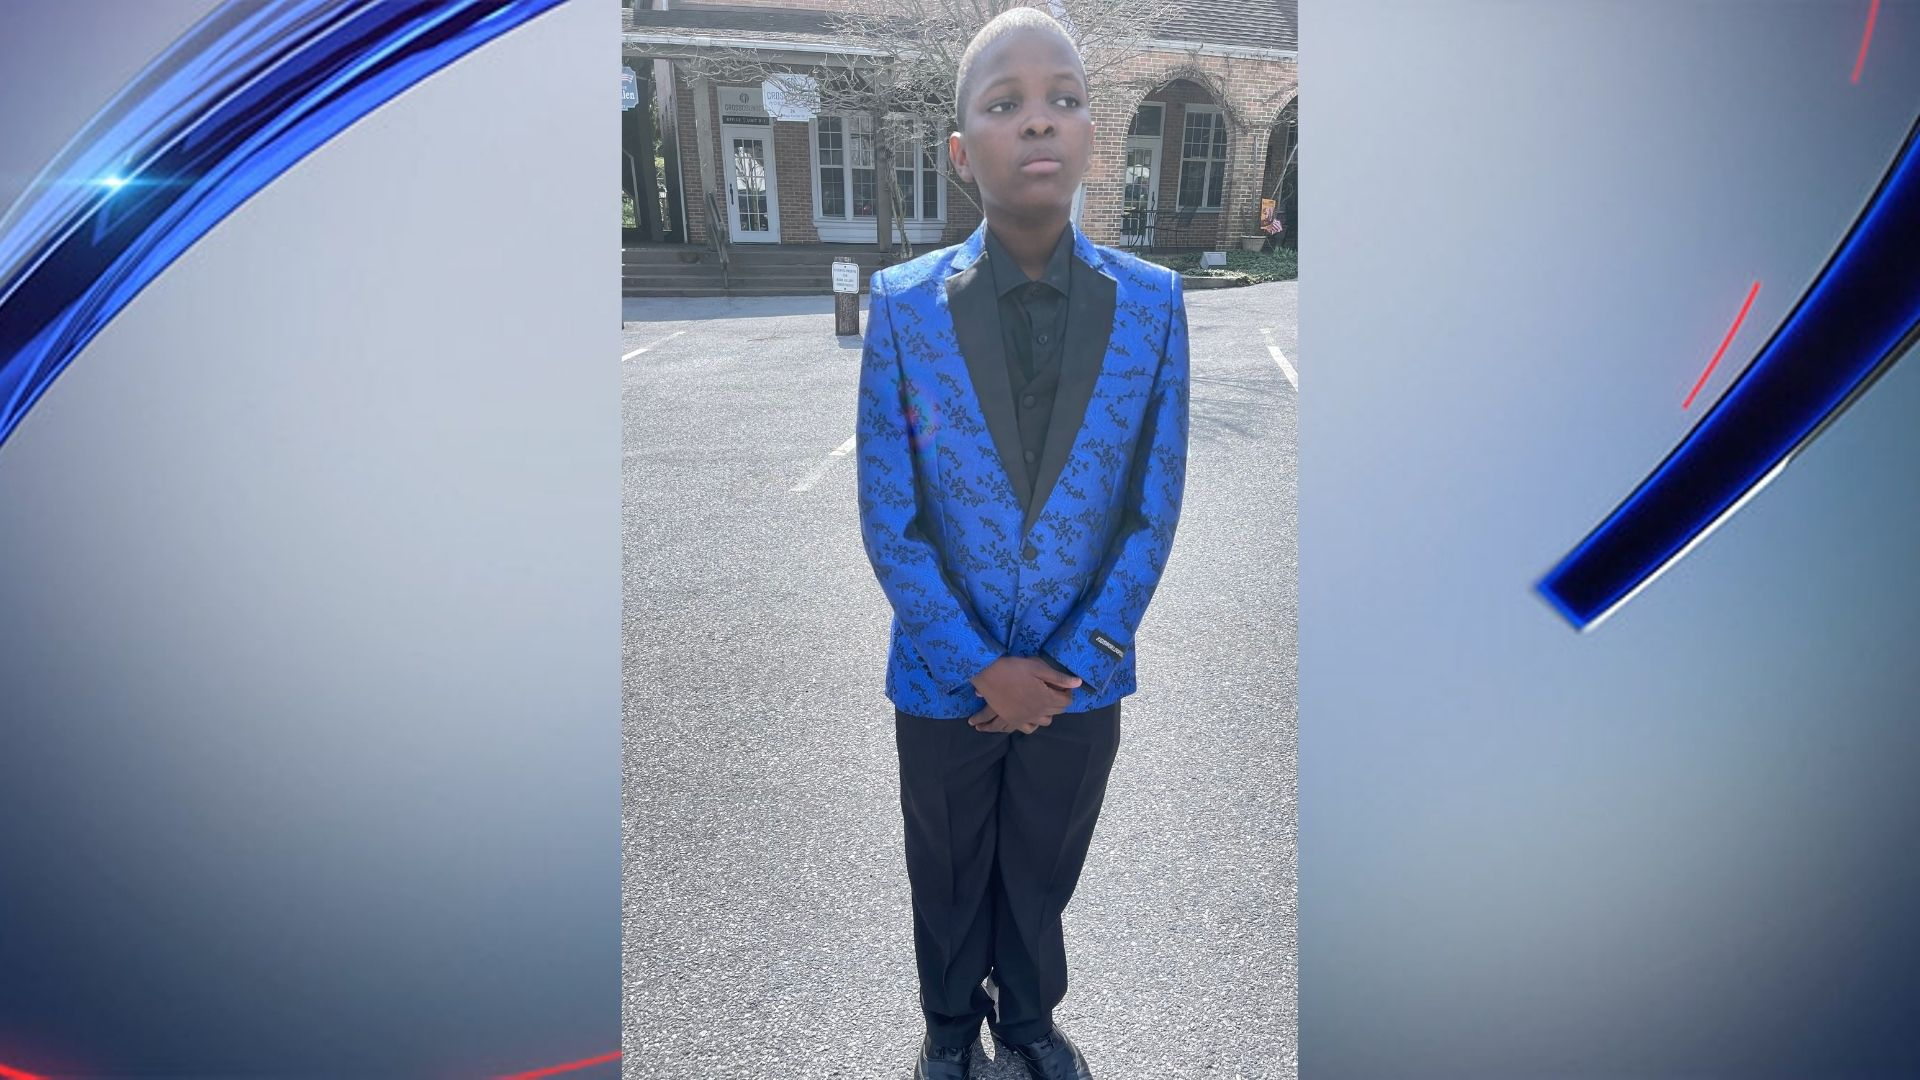 Brooklyn boy Romy Vilsaint died after reported bullying at school